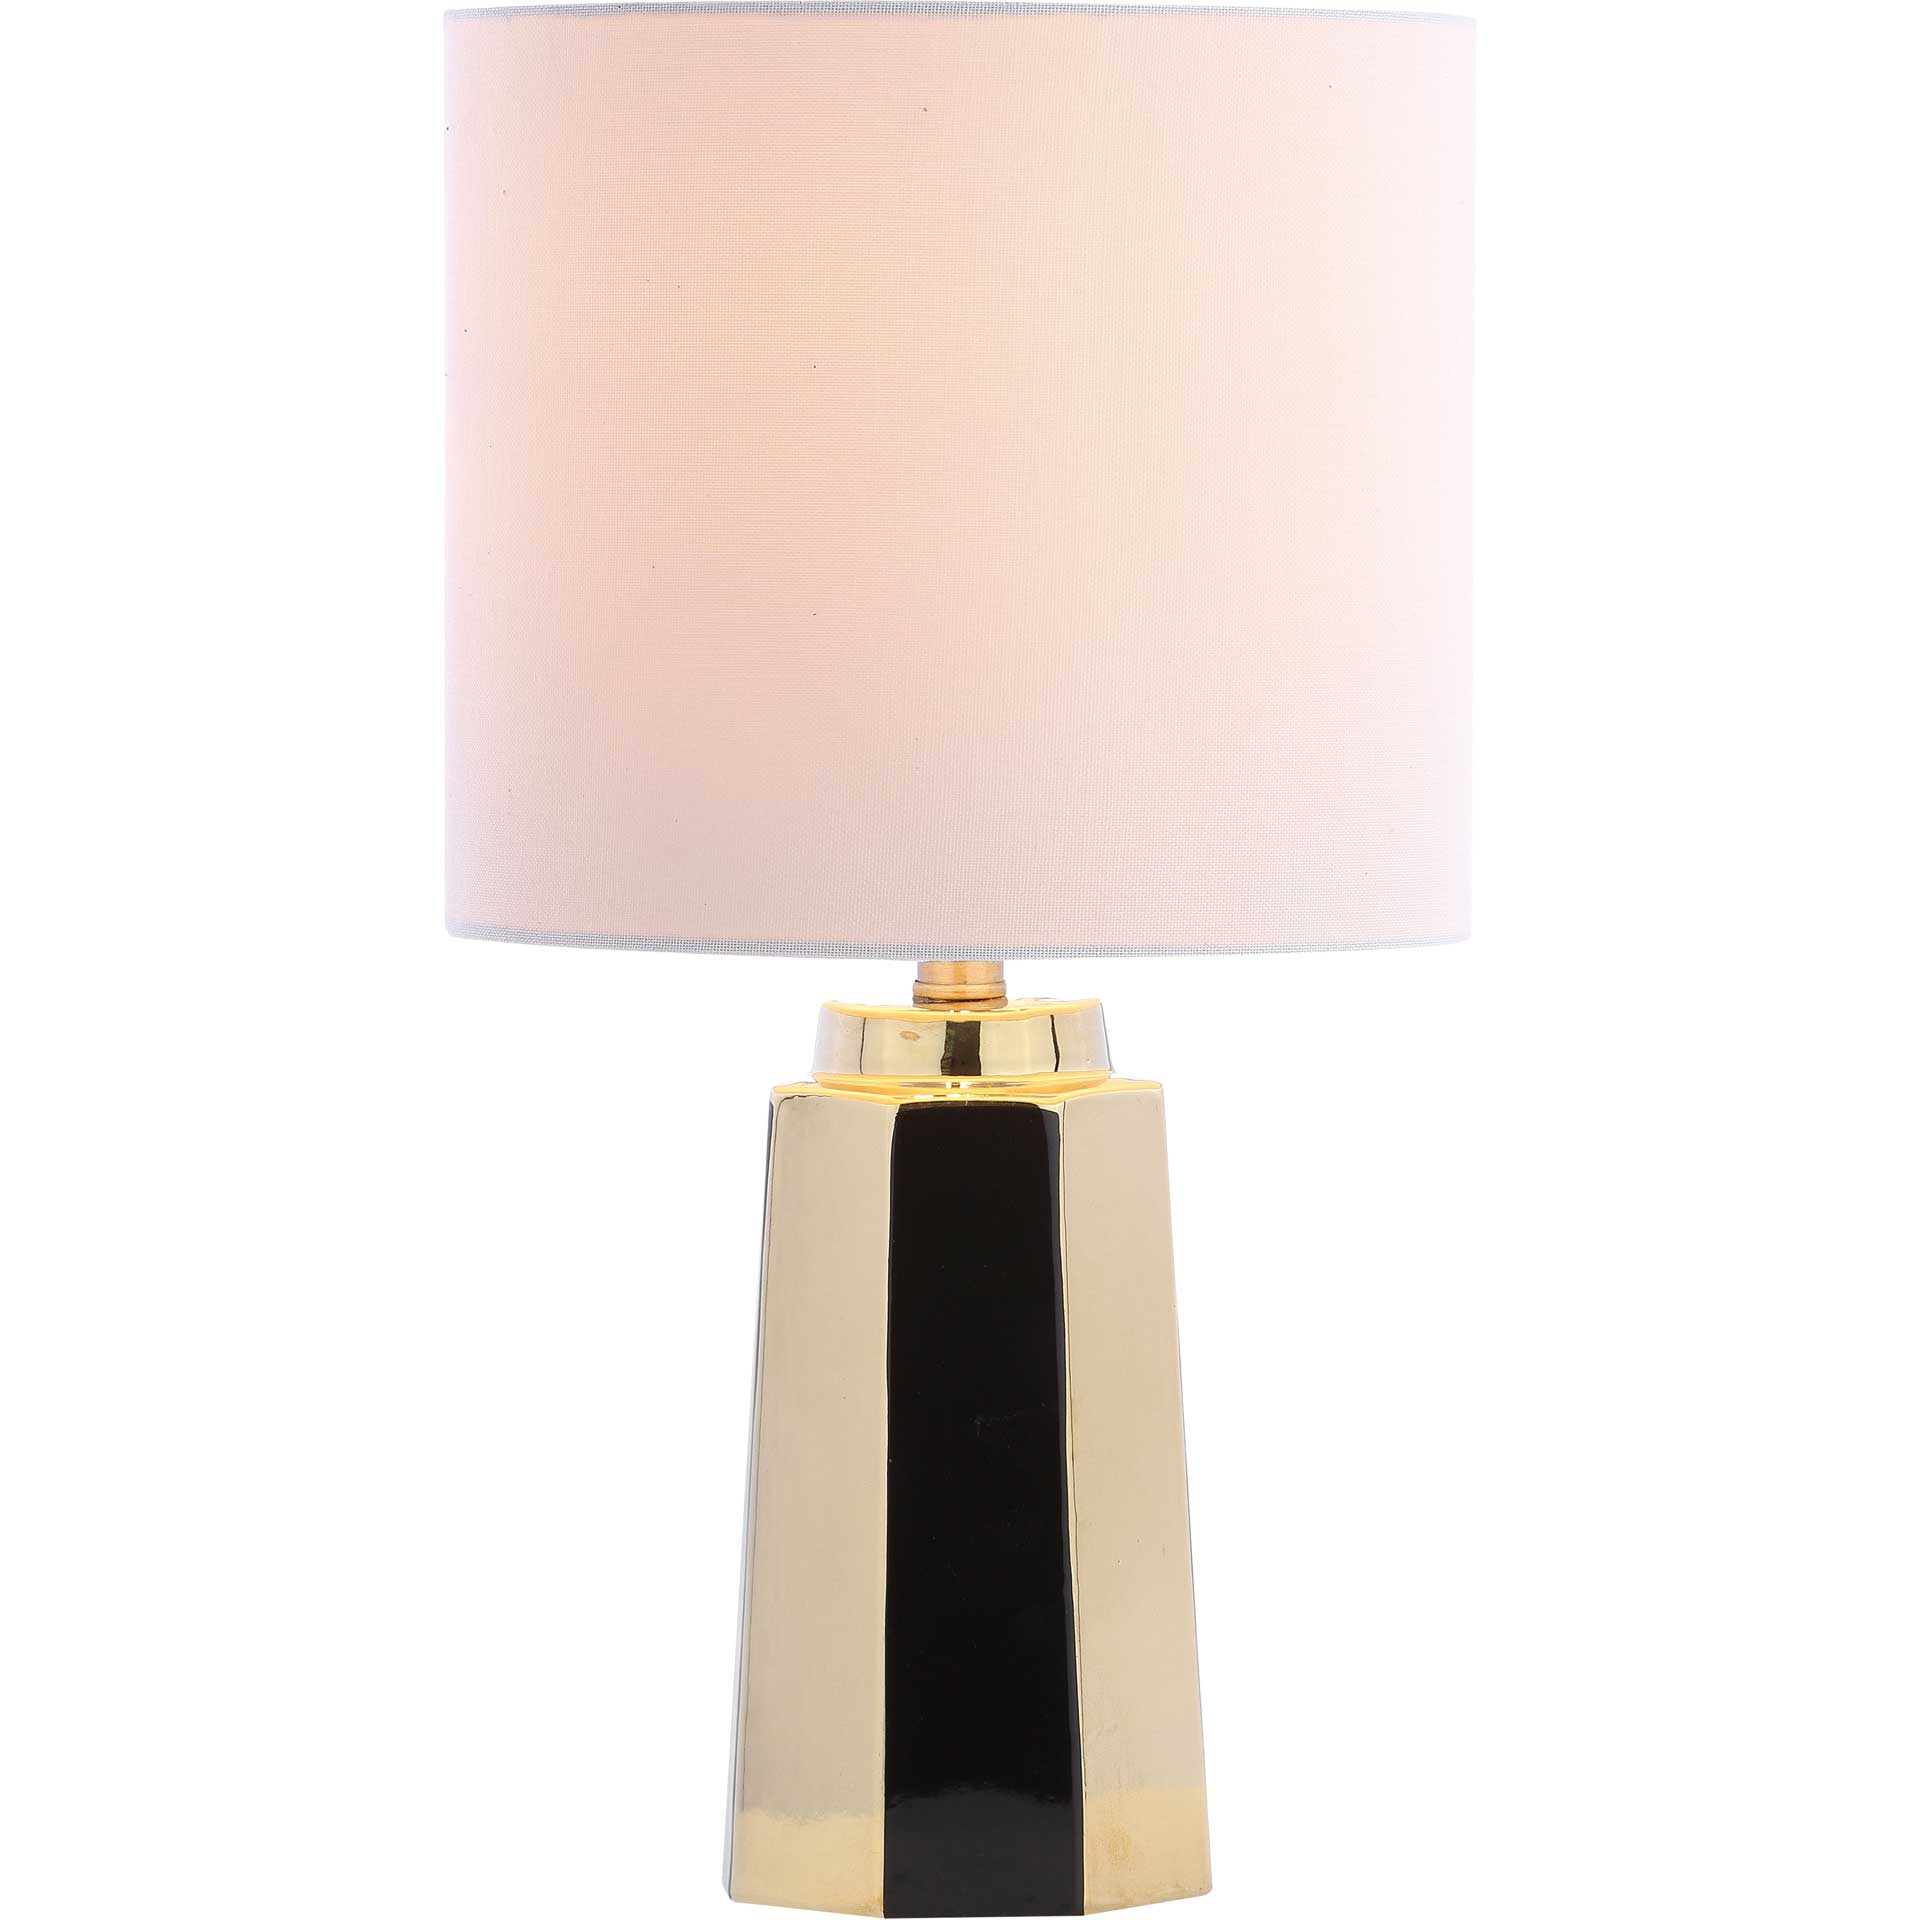 Palladian Table Lamp Plated Gold